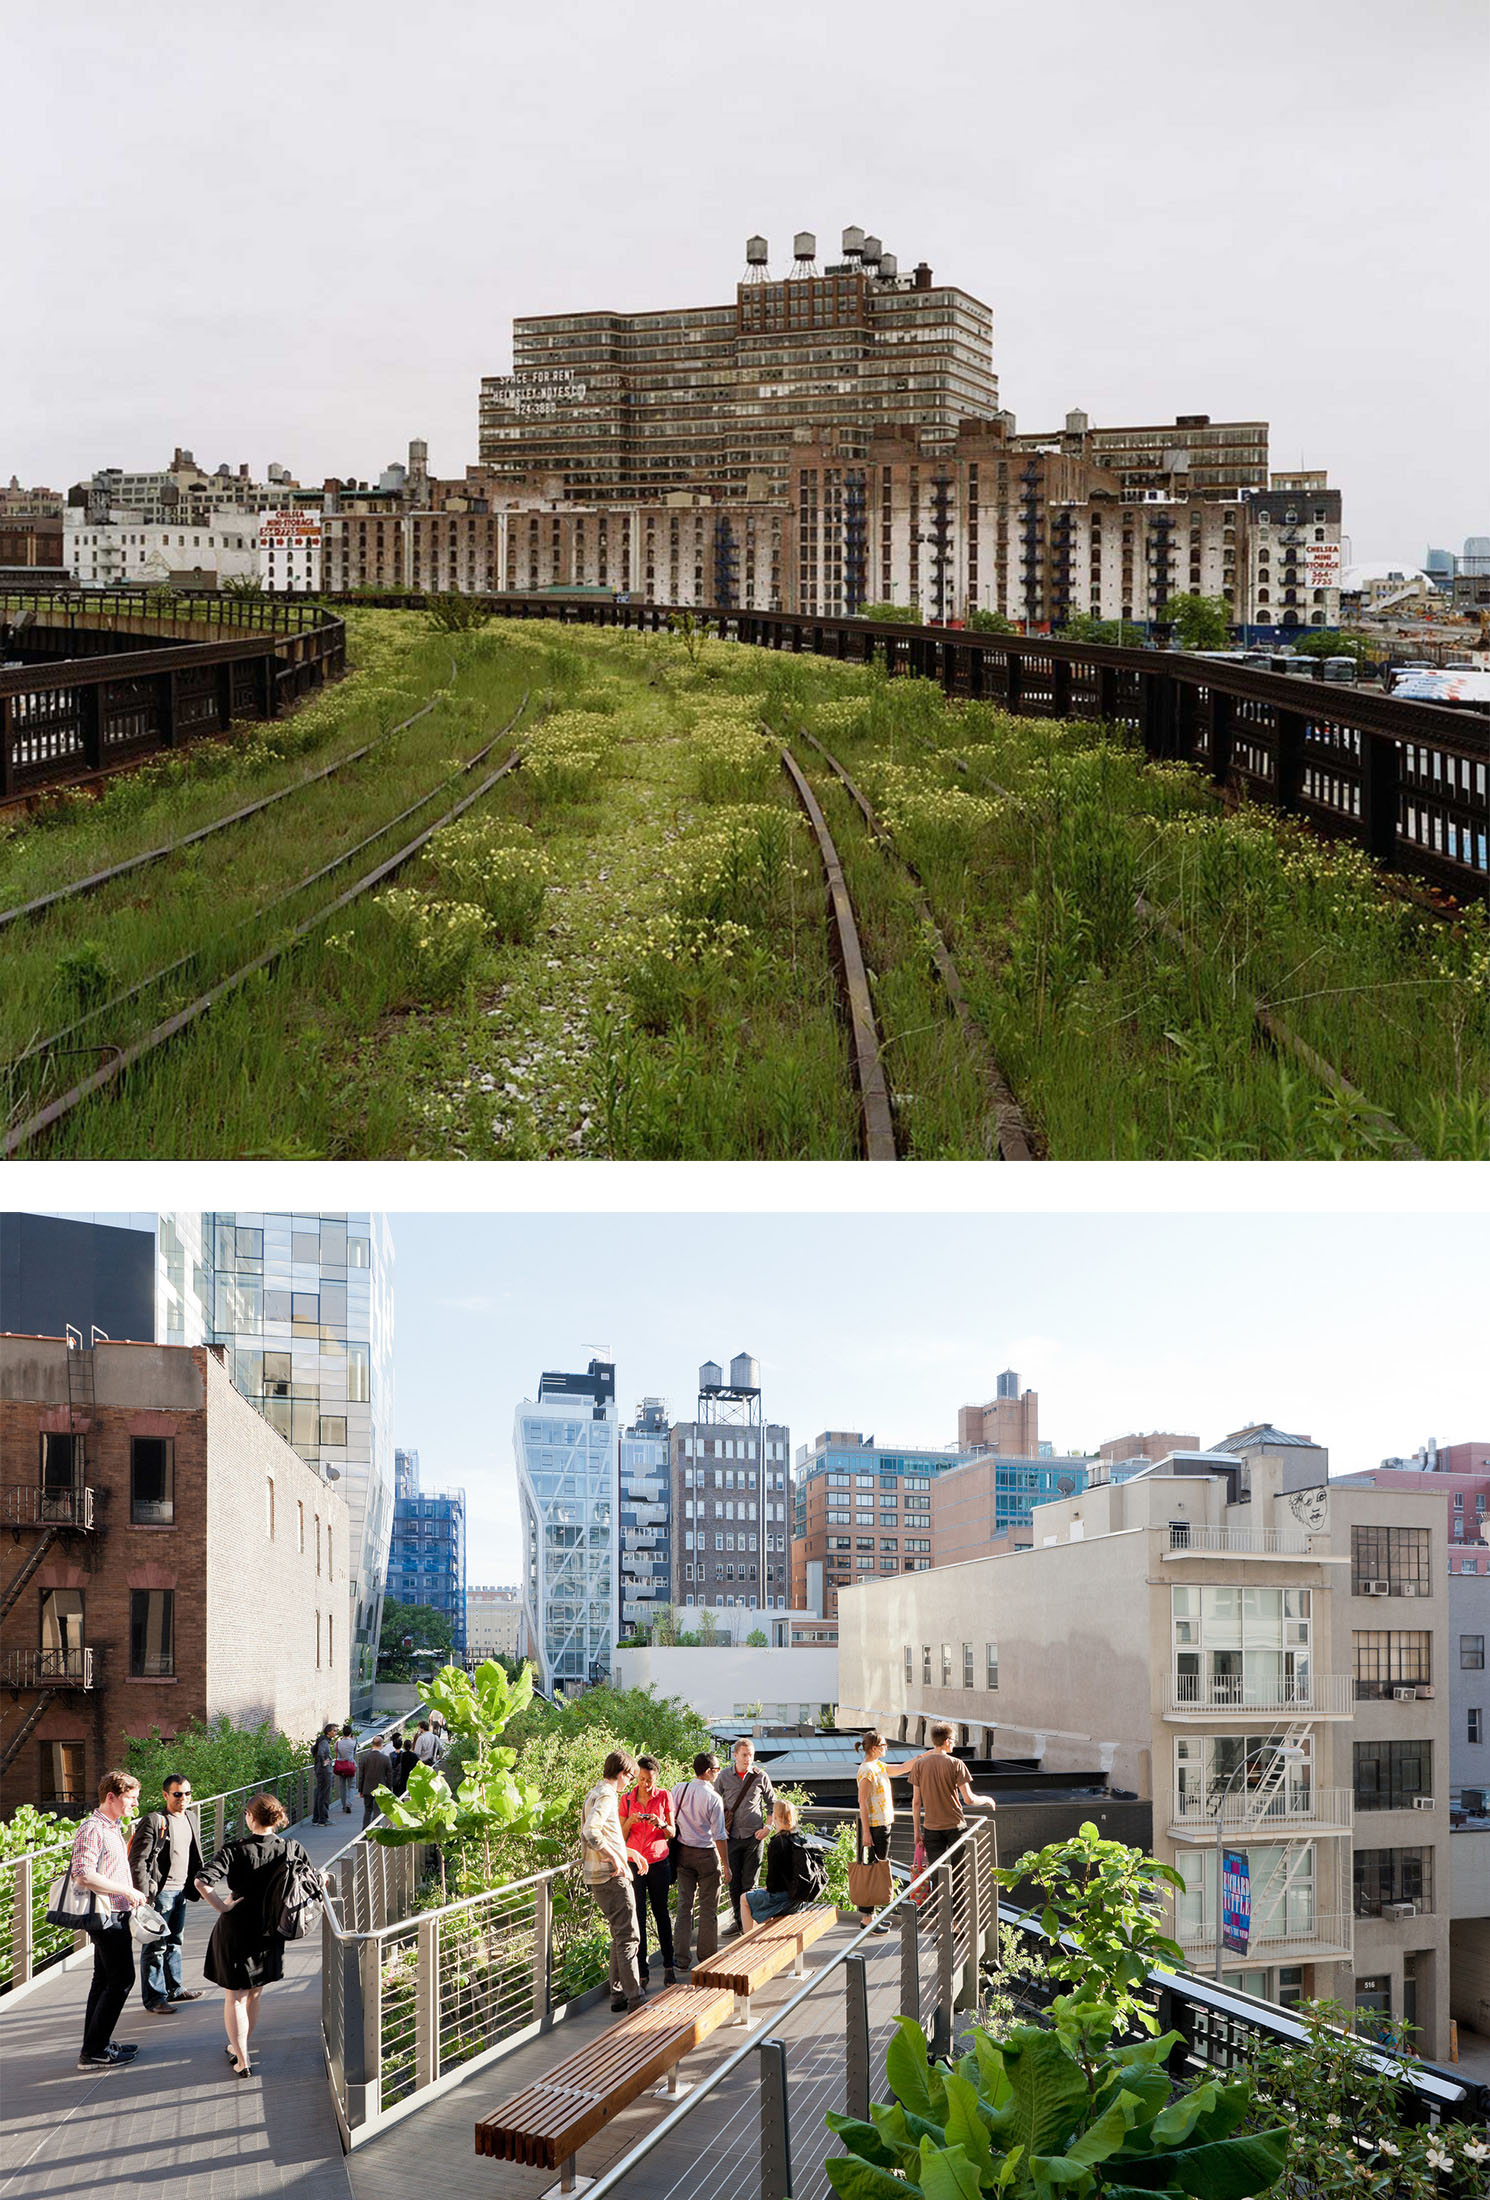 Highland Before/After: Abandoned West Side Line Before Renovation; The High Line Park Today